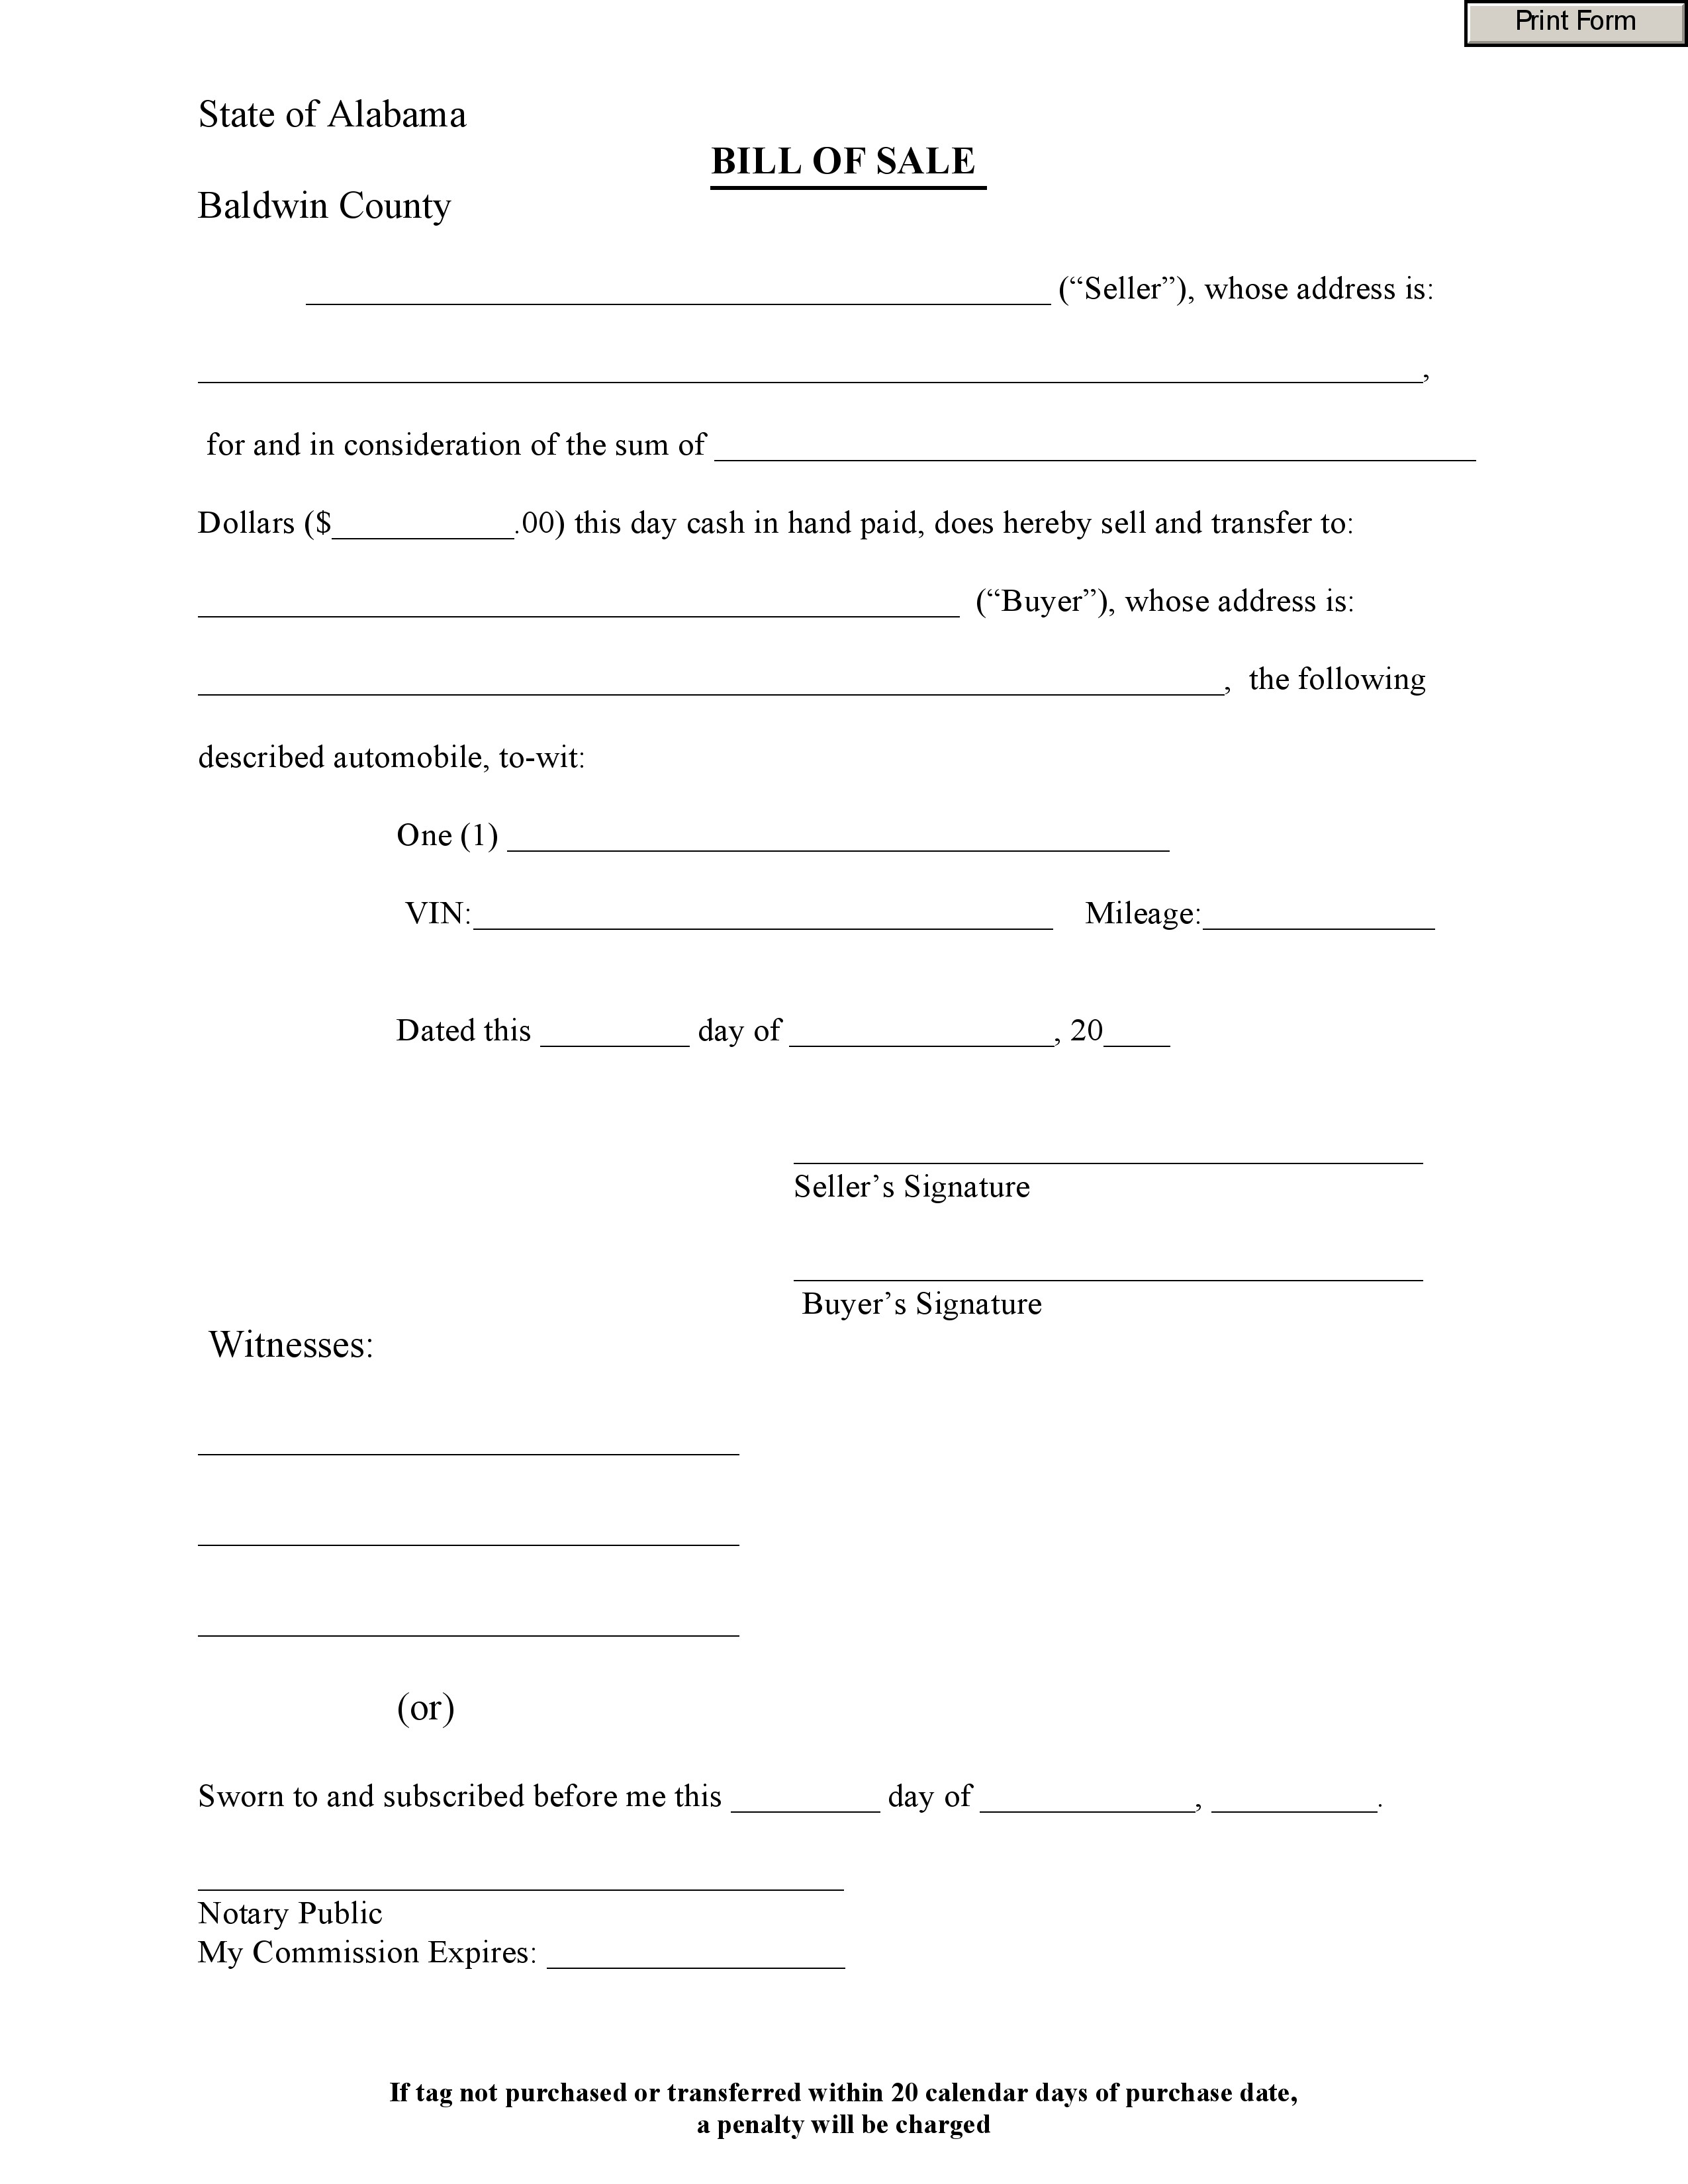 does a bill of sale have to be notarized